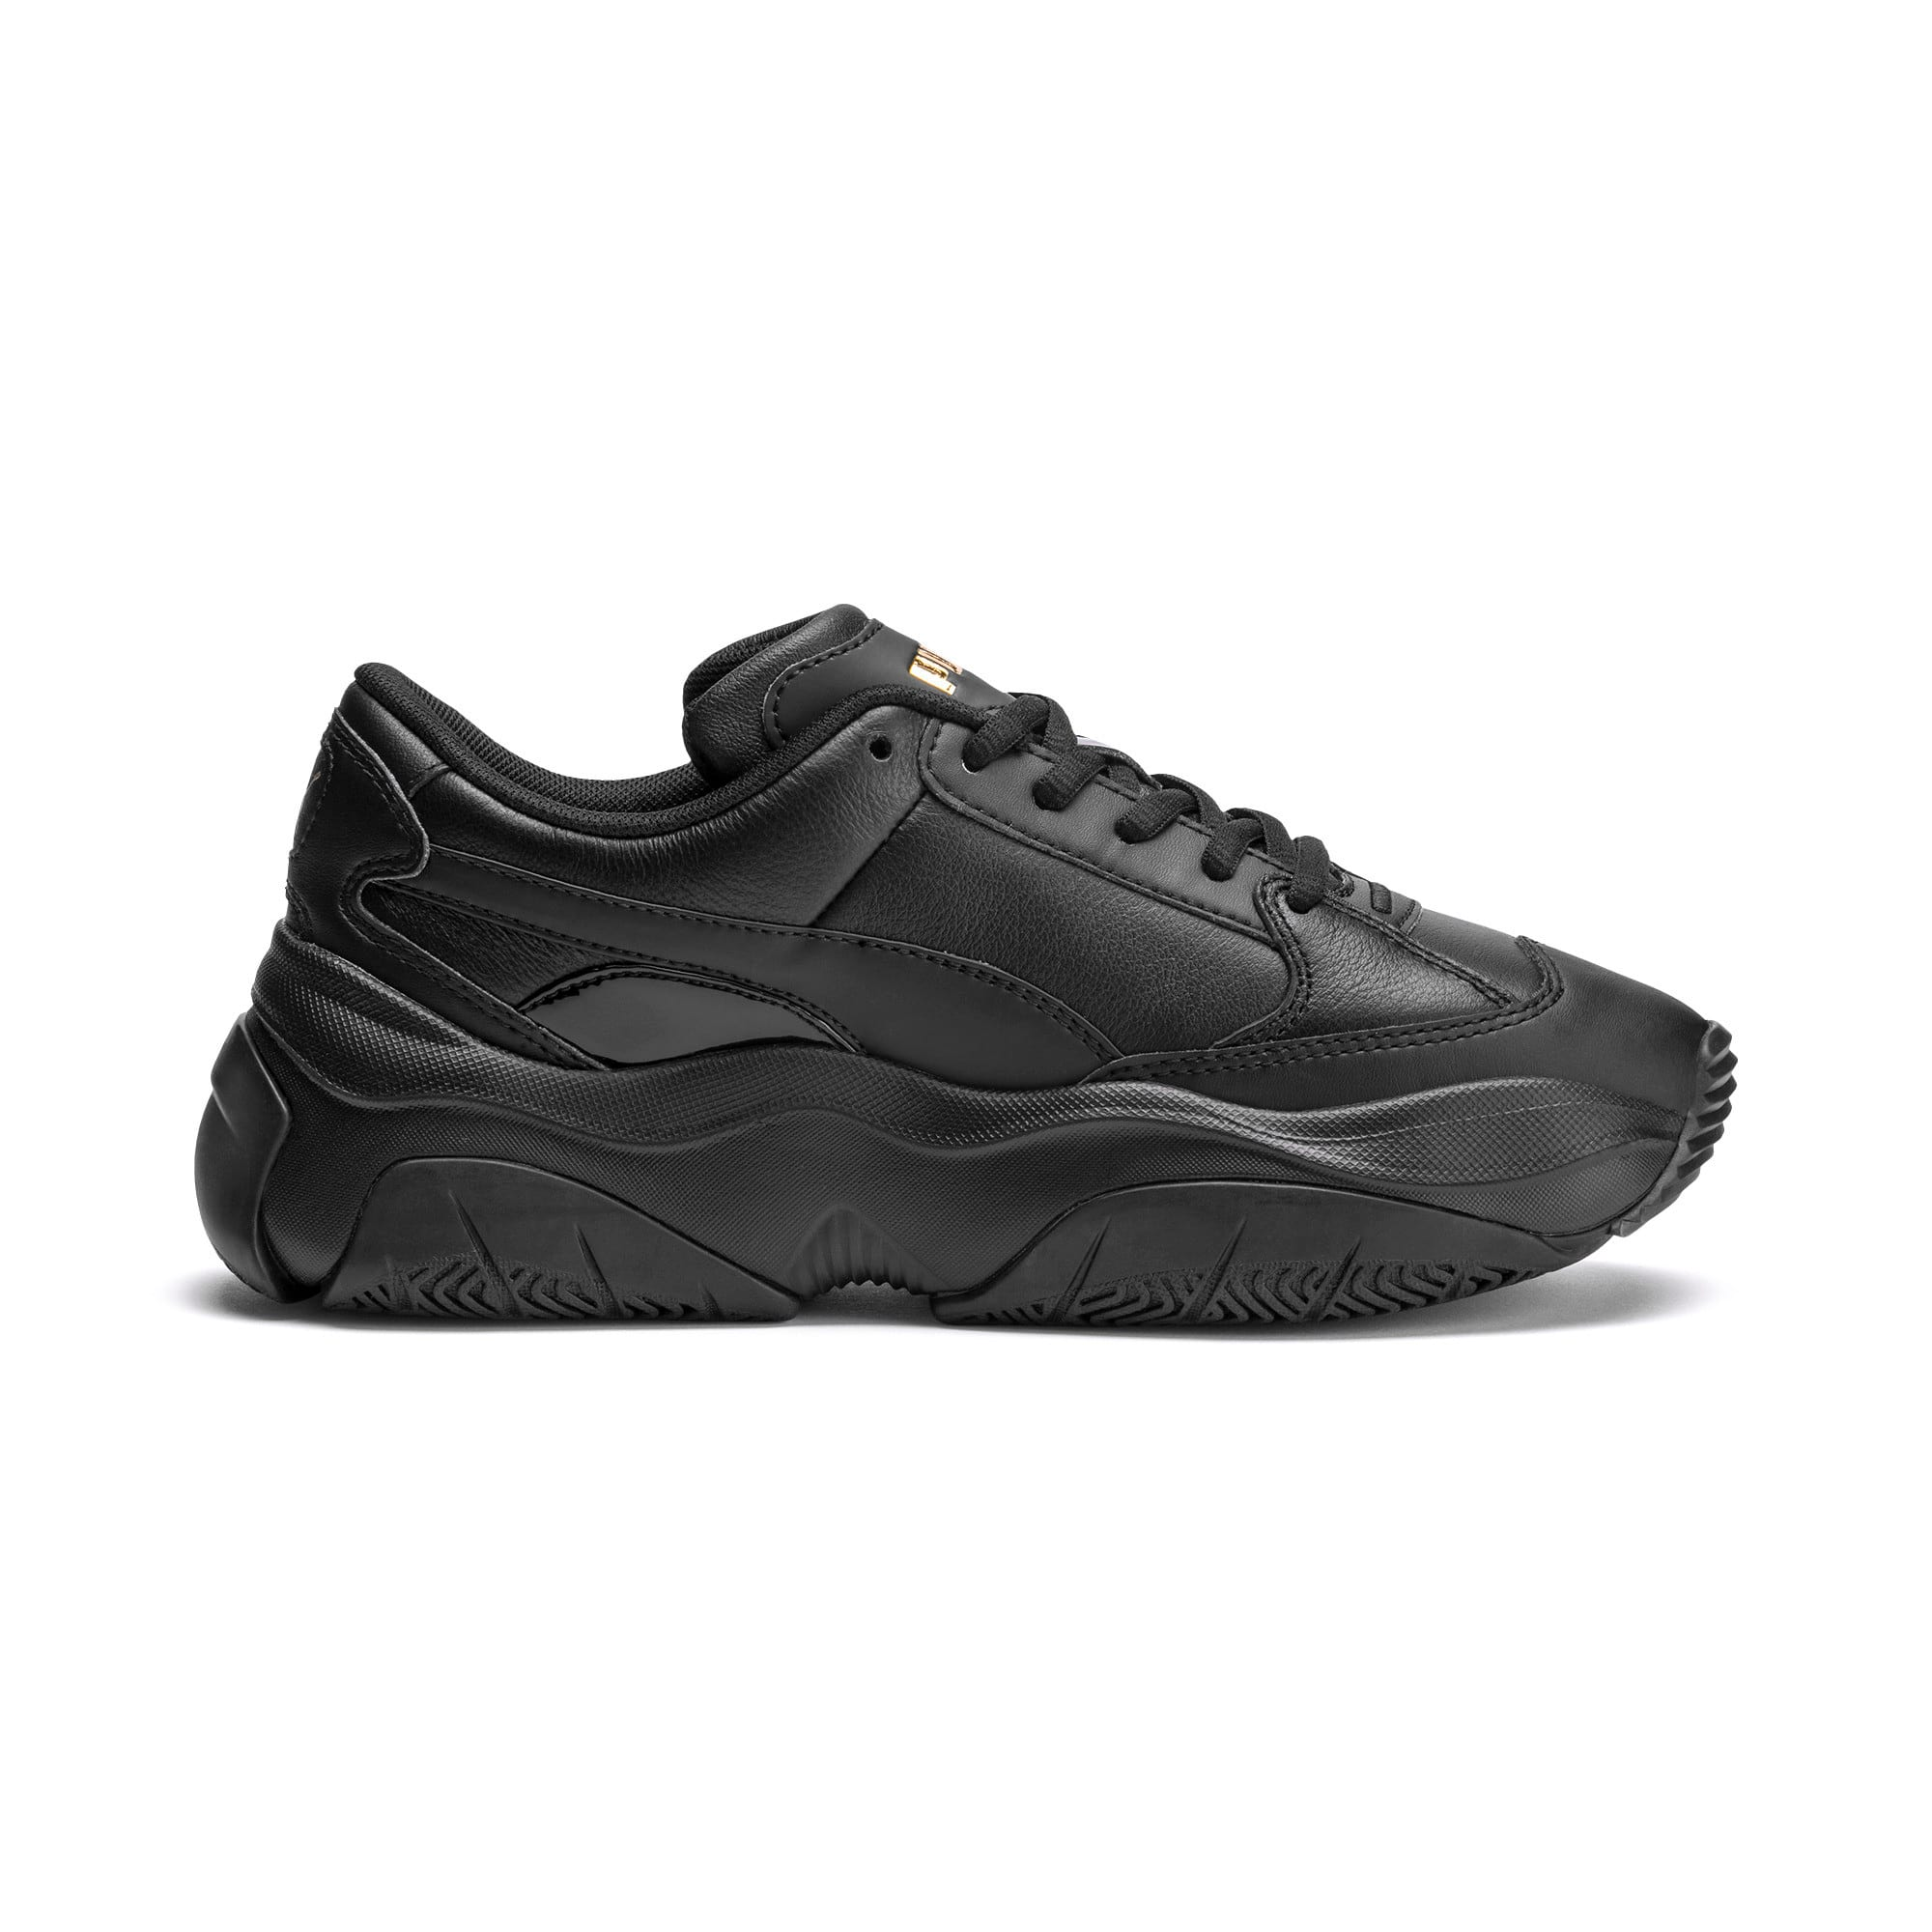 Thumbnail 5 of STORM.Y Leather Women's Trainers, Puma Black, medium